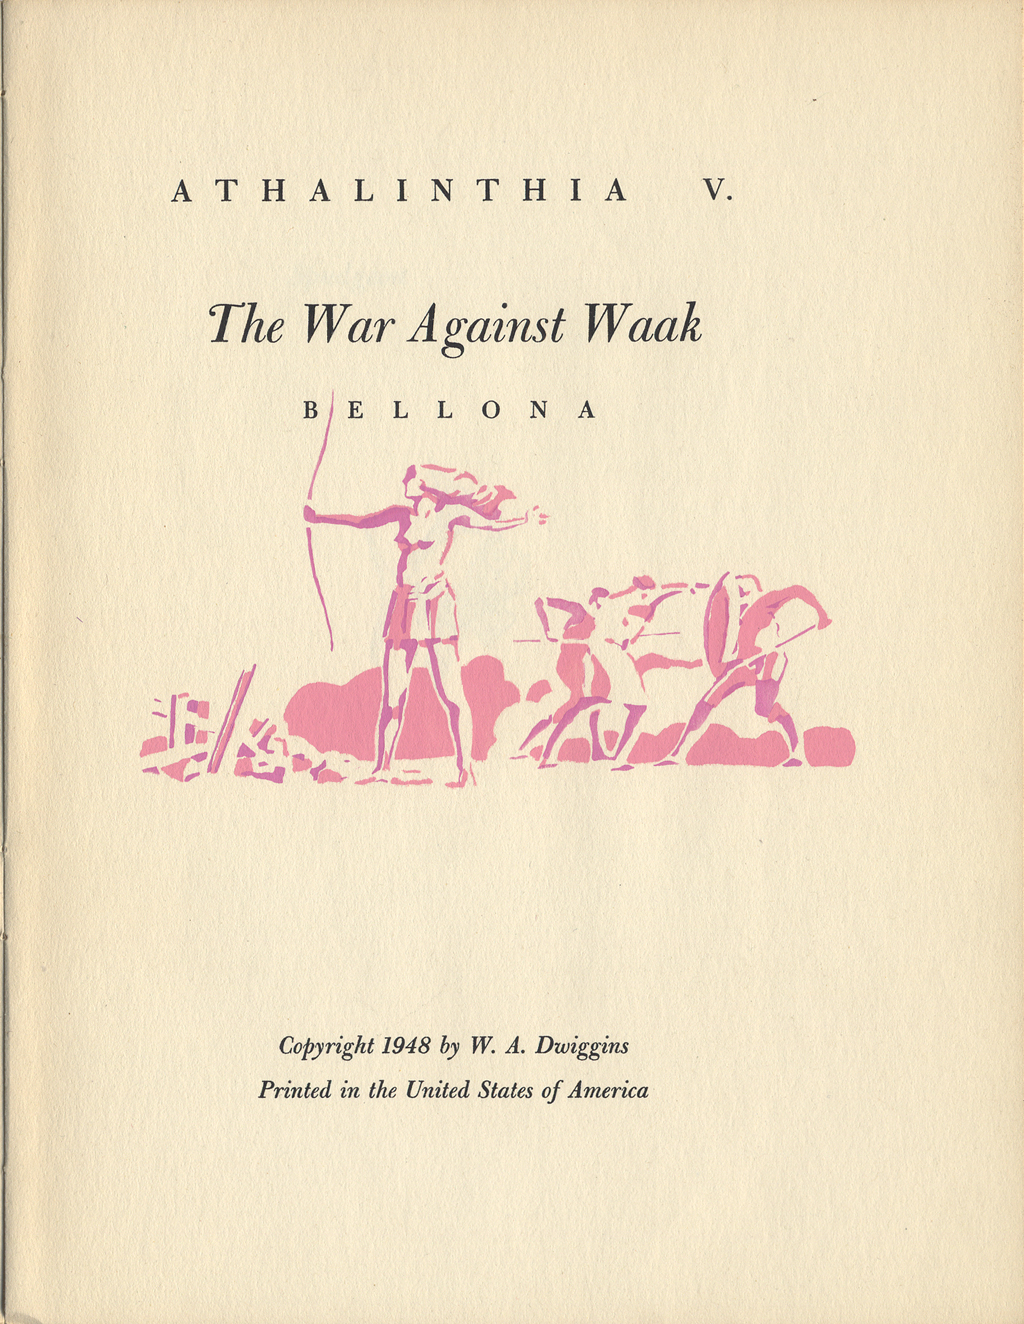 Title page for The War Against Waak by W. A. Dwiggins (Hingham, Massachusetts: Püterschein-Hingham, 1948). Illustration and typography by W.A. Dwiggins.